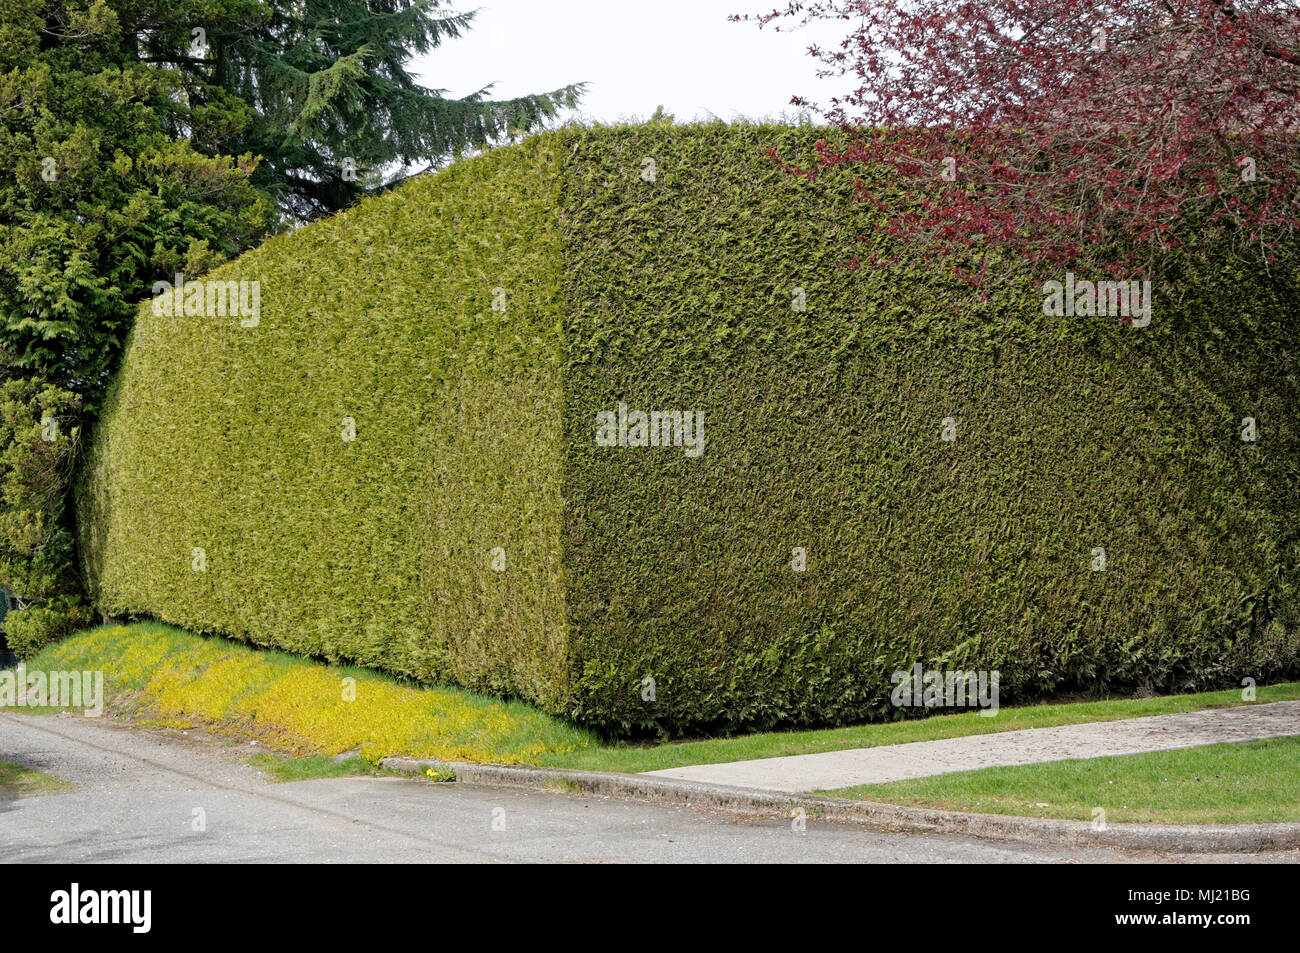 Sculpted Hedges Stockfotos und bilder Kaufen Alamy